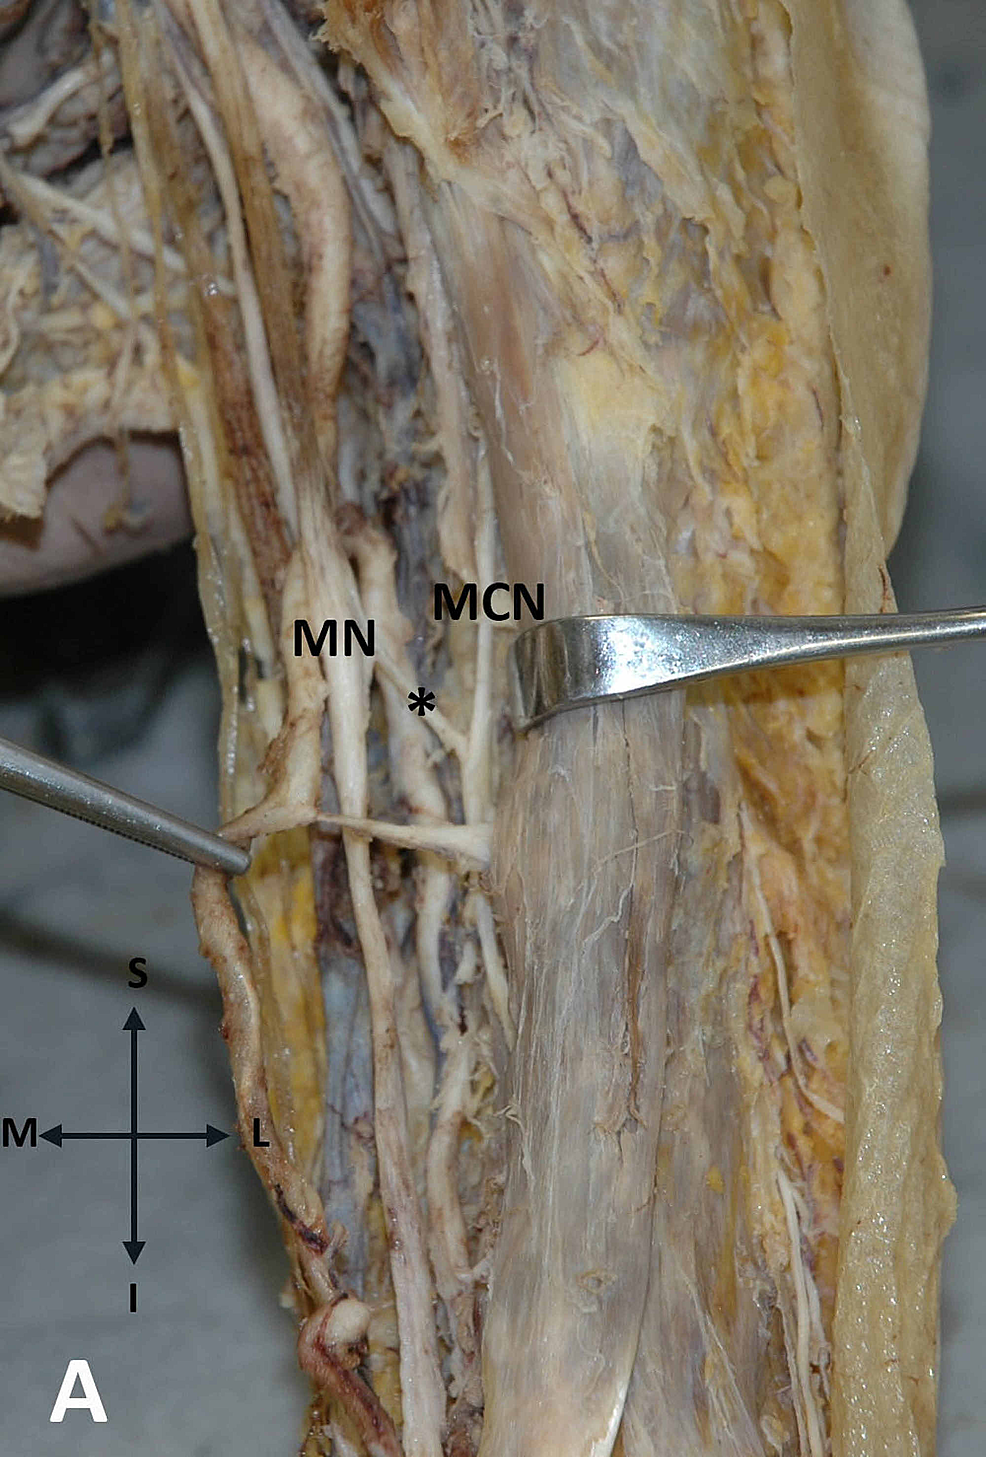 Anastomosis-between-the-MN-and-MCN-on-the-left-upper-arm